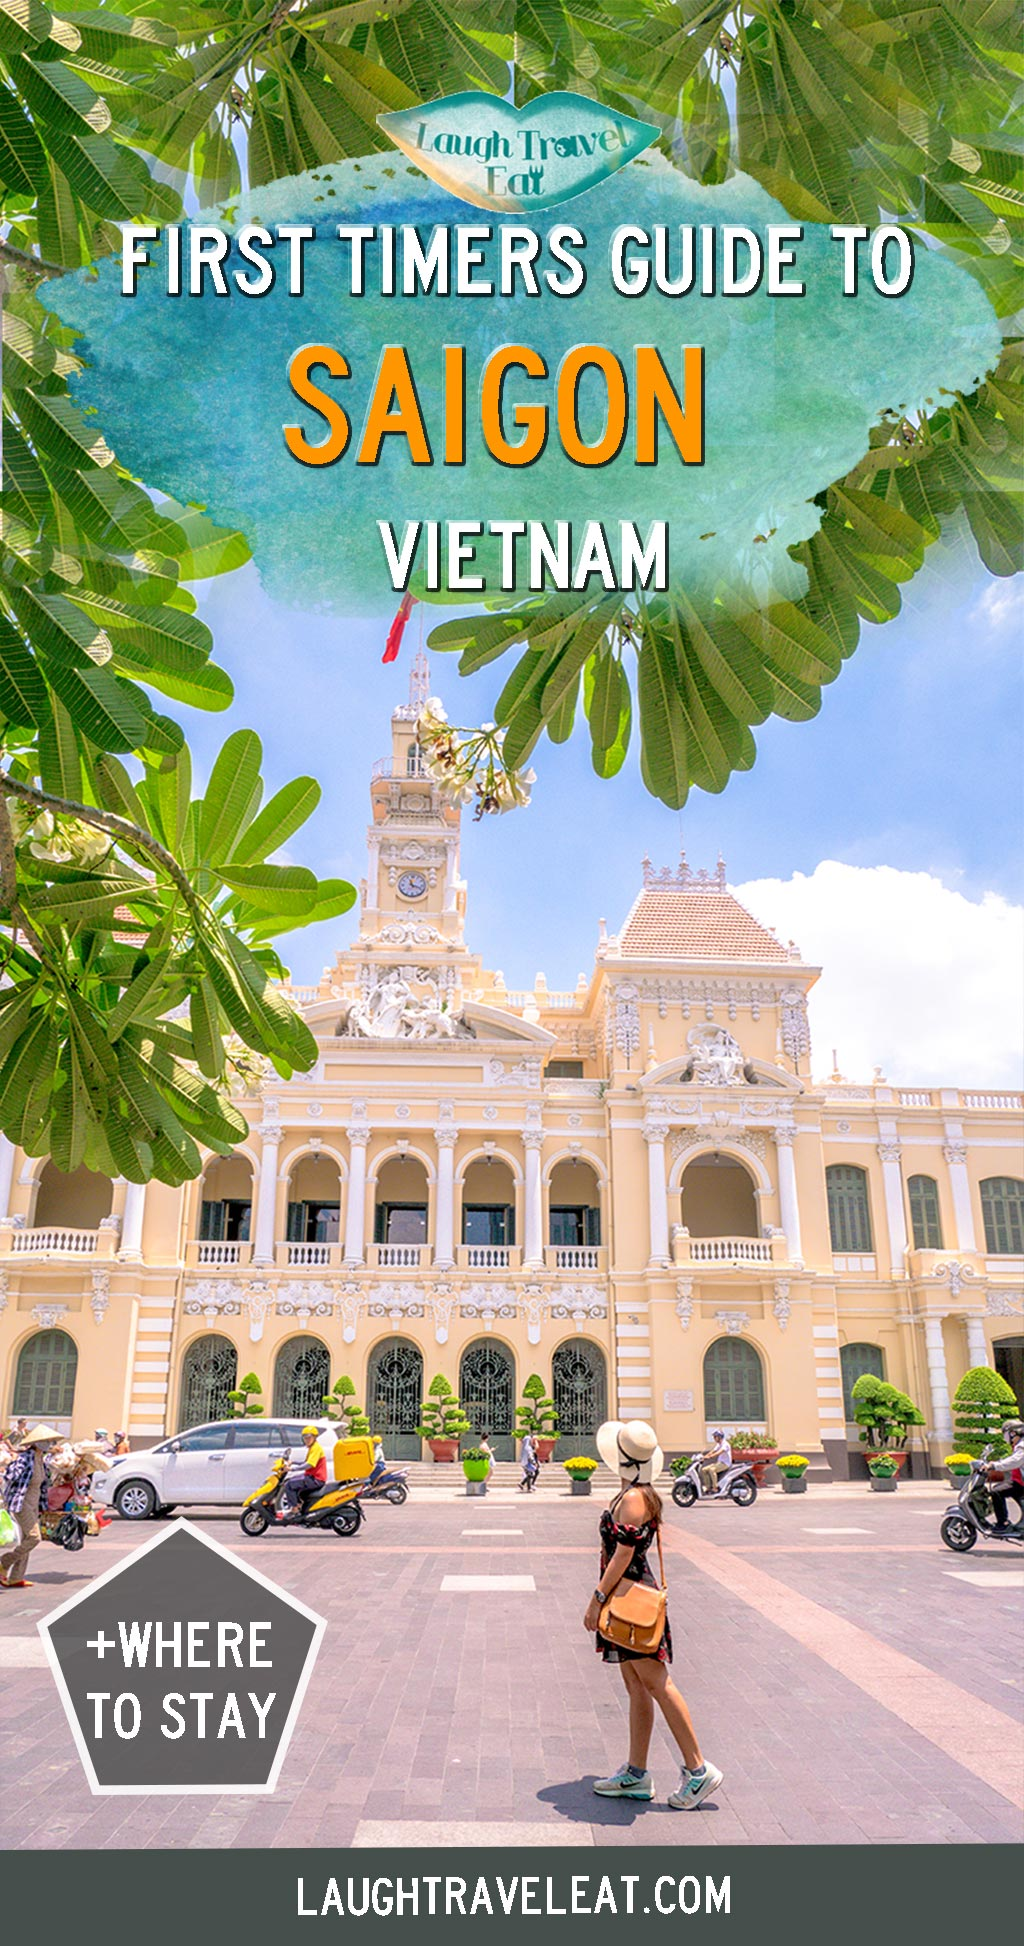 Ho Chi Minh City, also called Saigon, is the biggest city in southern Vietnam. As a first time visitor, here's my list of favourite sights #hcmc #saigon #vietnam